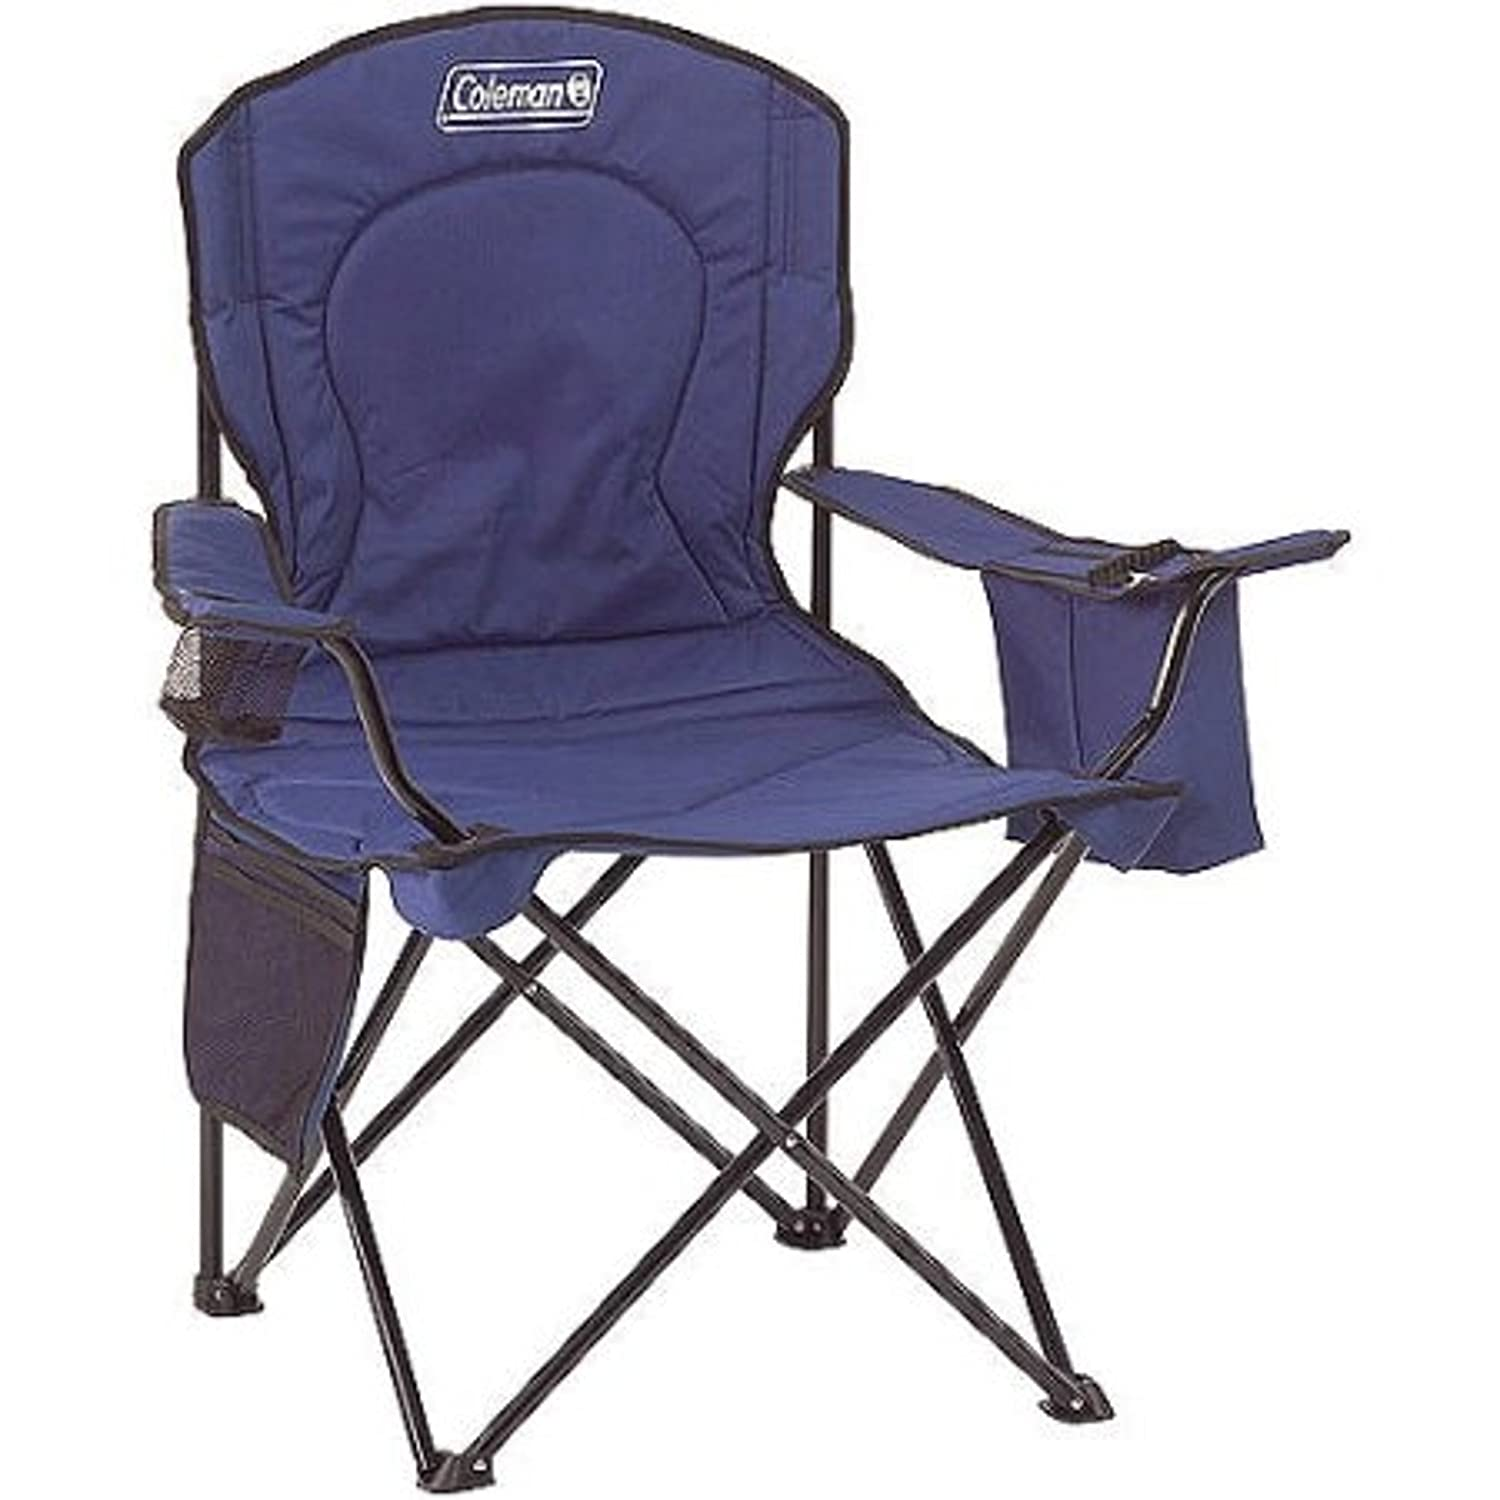 Amazon Oversized Quad Camping Chair with Cooler Pouch Blue